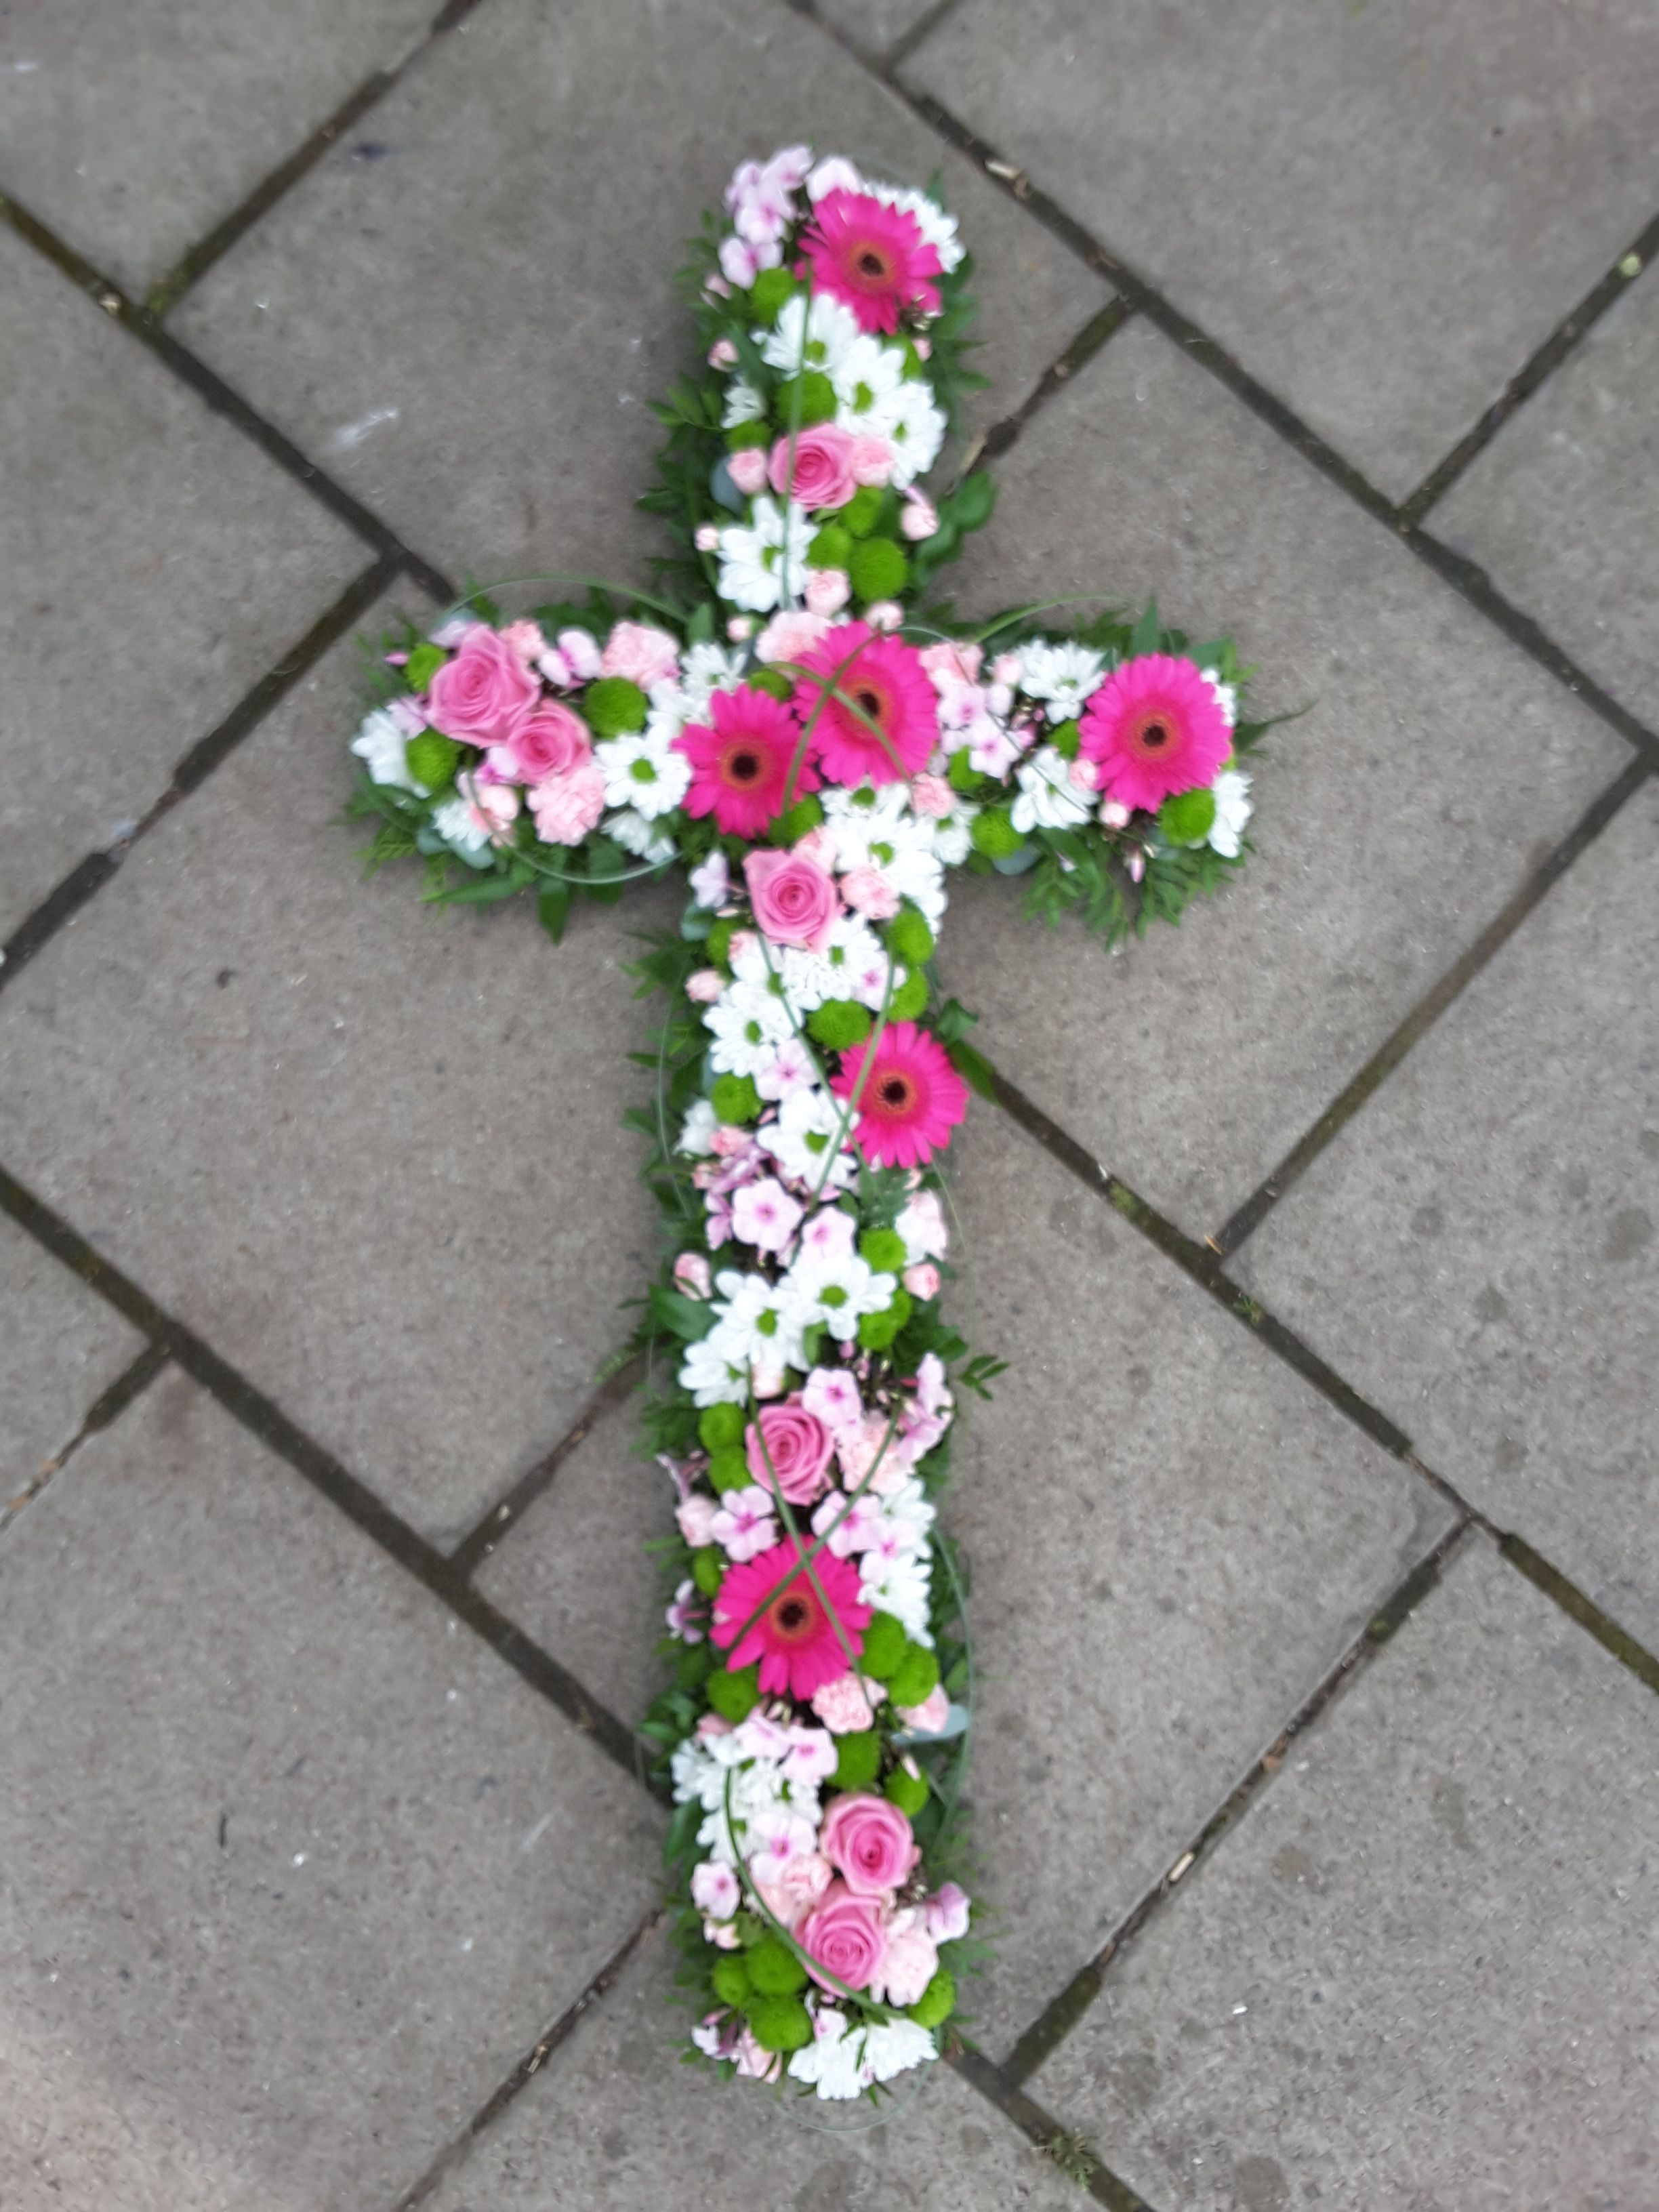 Pink and white loose based funeral Cross with Bear grass